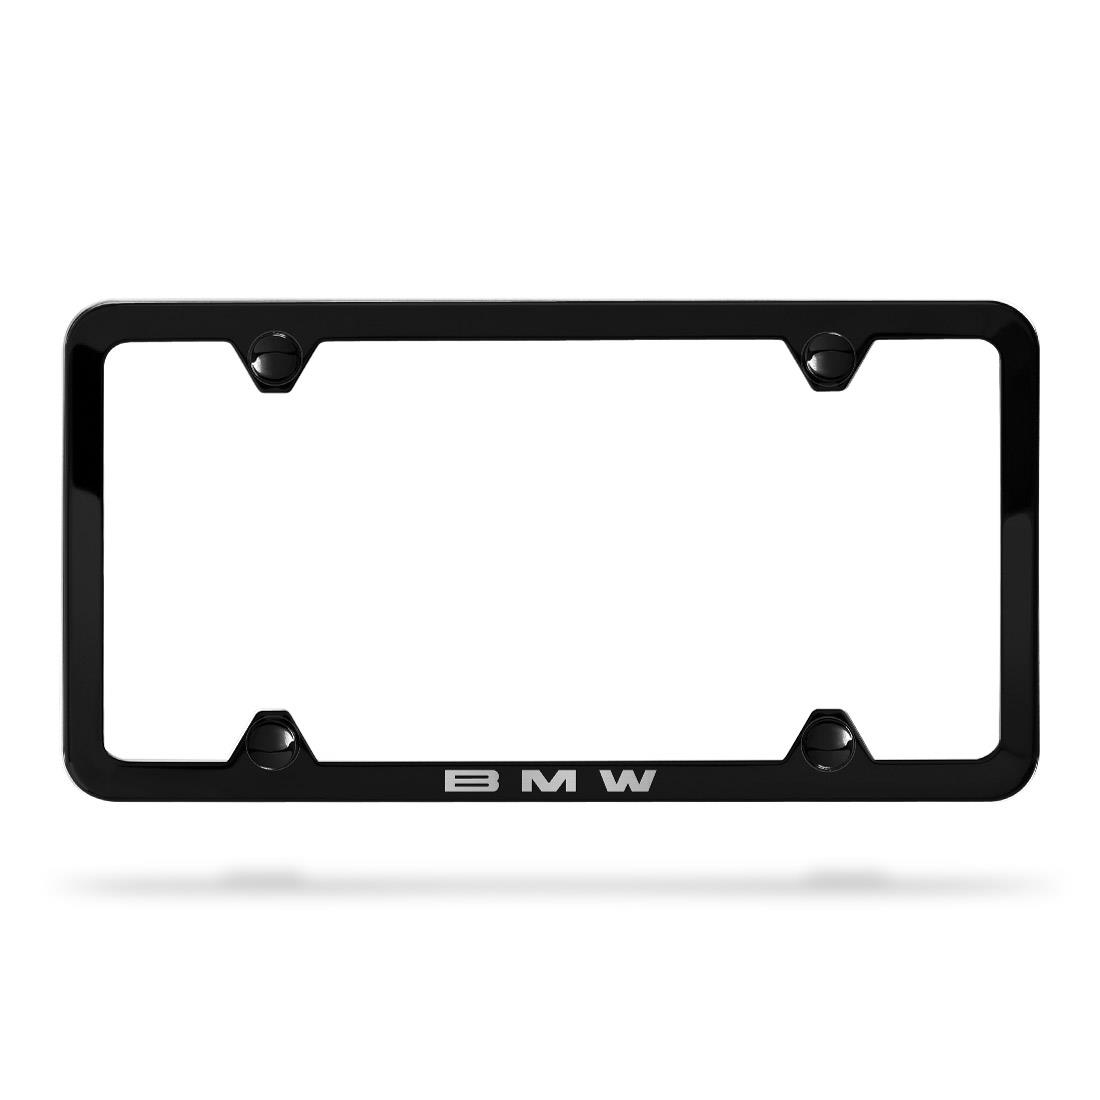 BMW Laser Slimline License Plate Frame